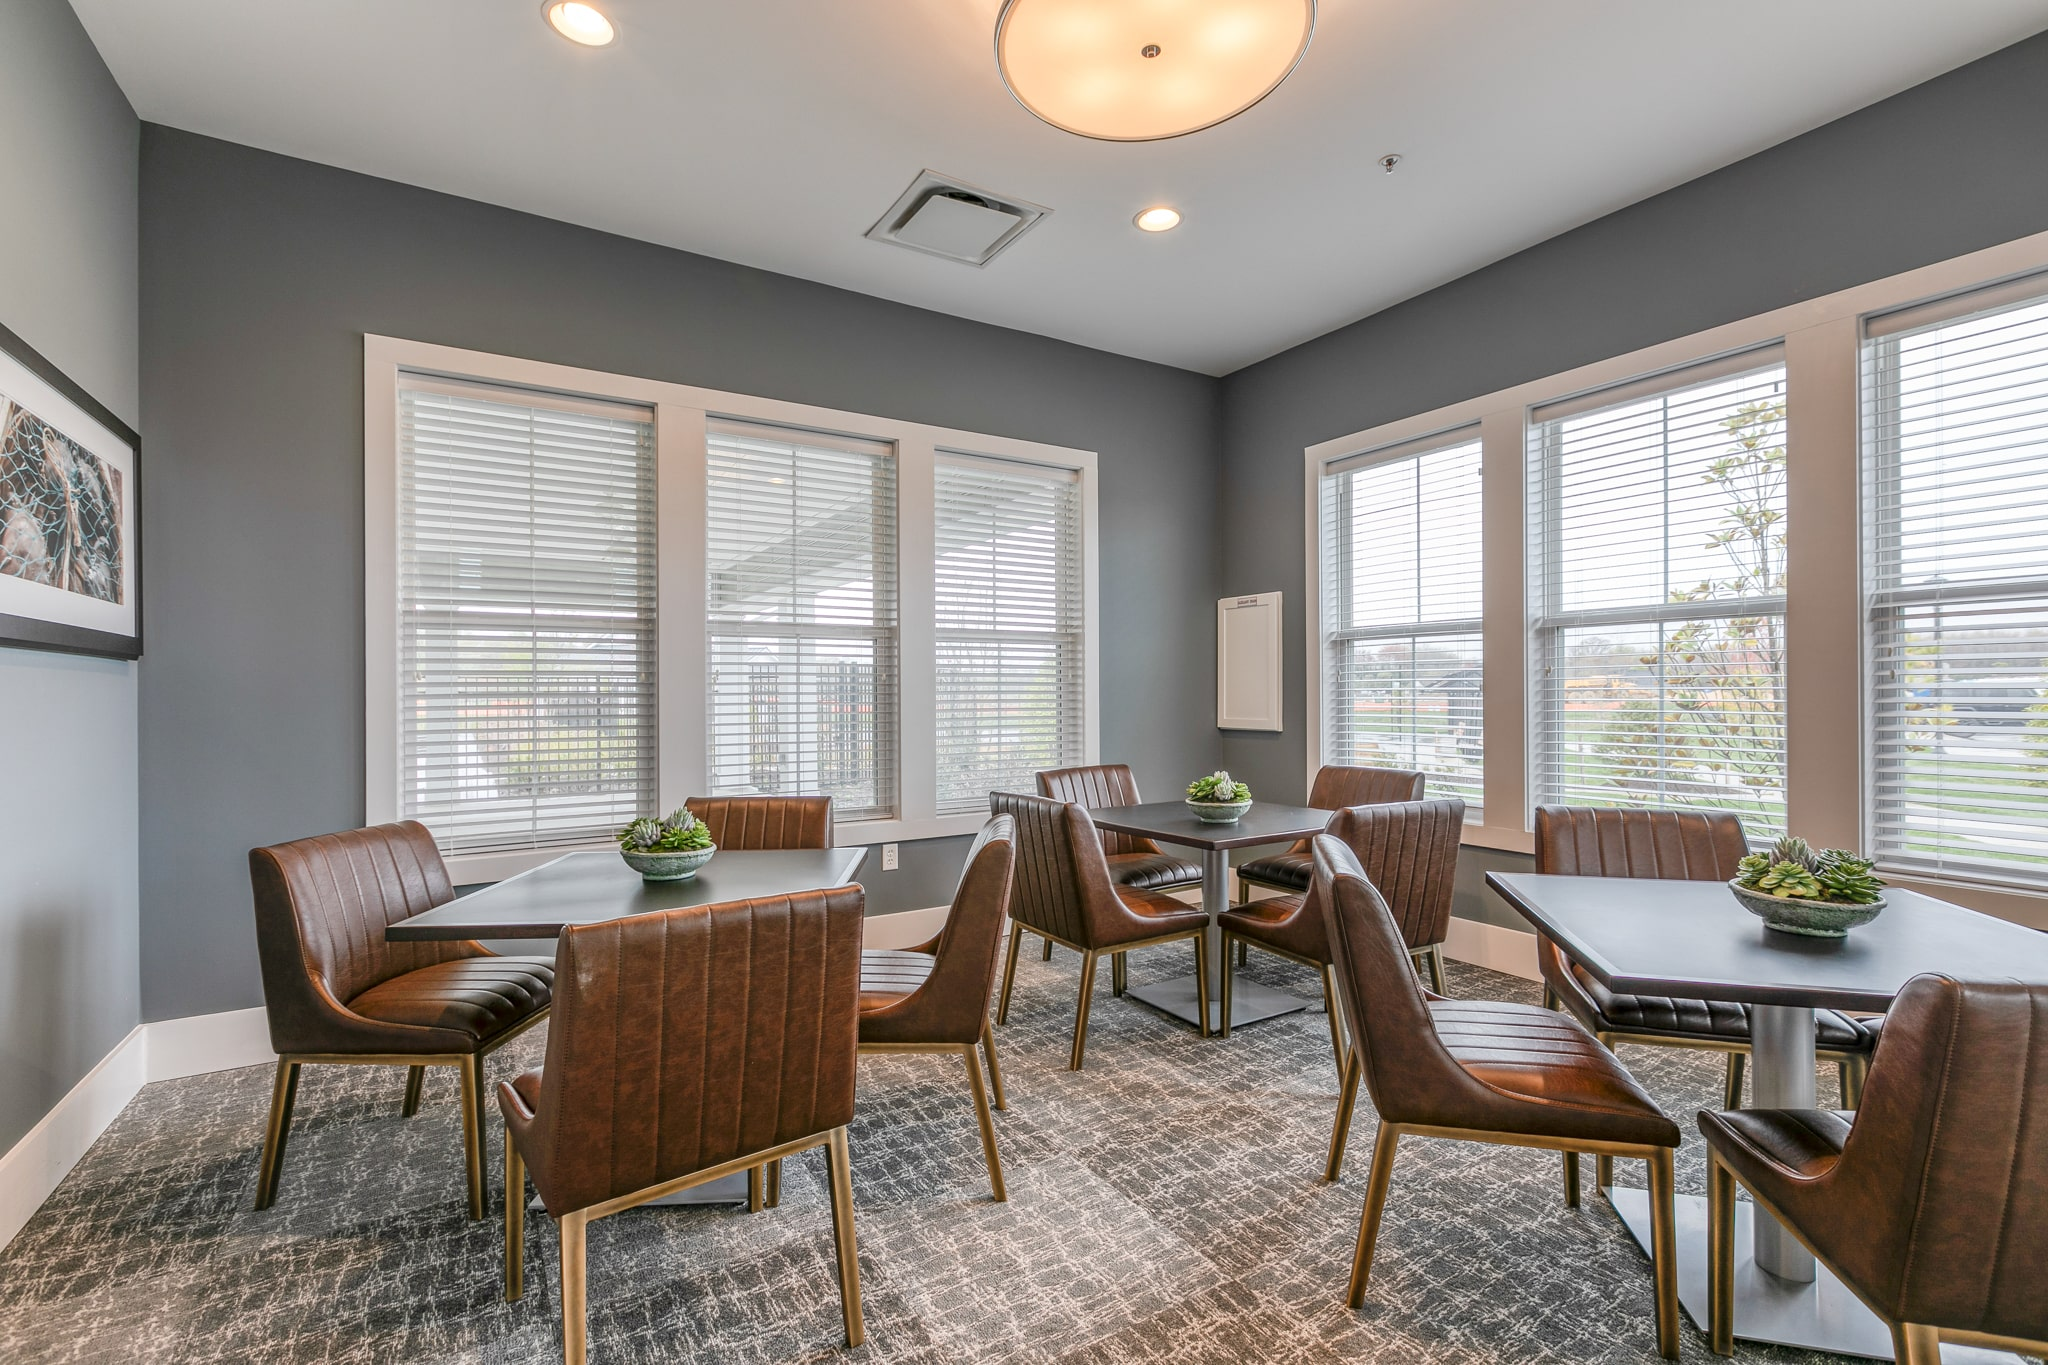 Image of a casual dining area inside the Bay Bride Cove Community Clubhouse